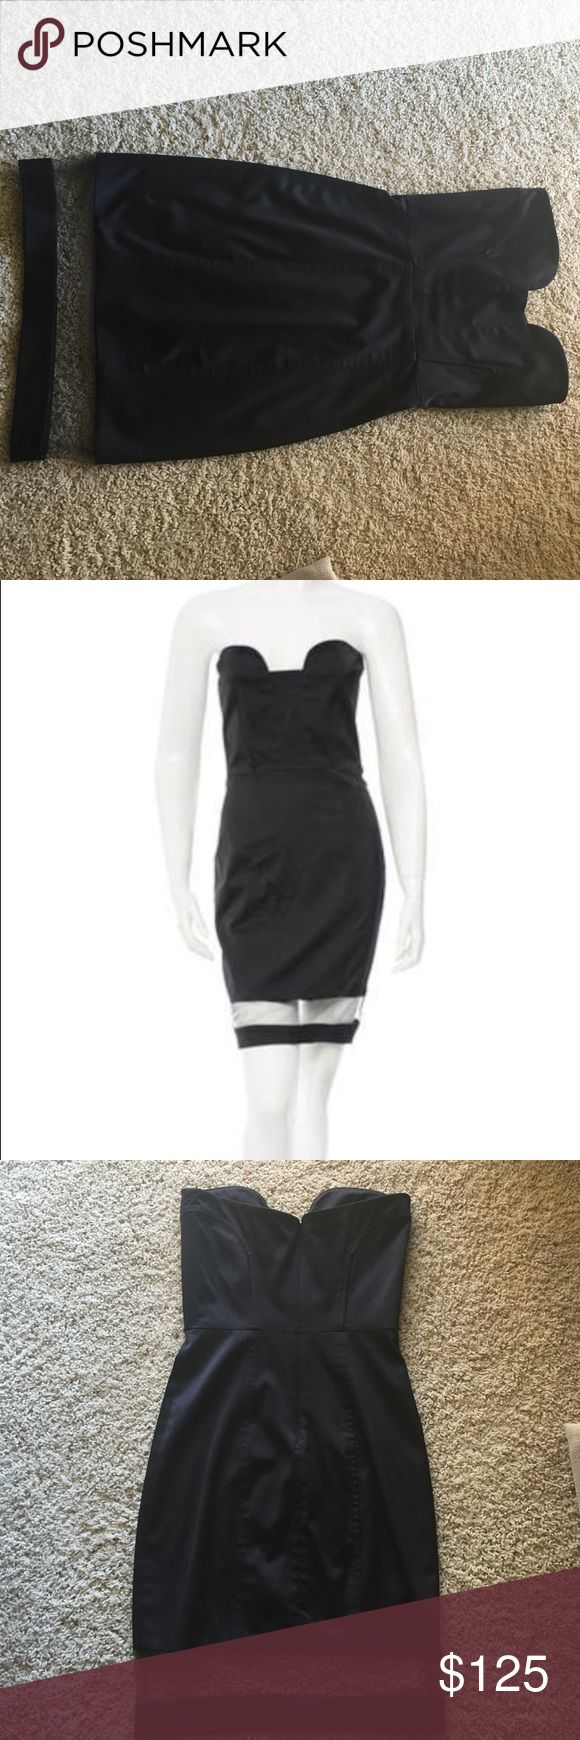 Black strapless Alexis dress Stunning black strapless Alexis dress with sheer panel at the bottom. Purchased last year from Neiman Marcus and worn once and dry cleaned. In perfect condition! Size XS. Alexis Dresses Strapless